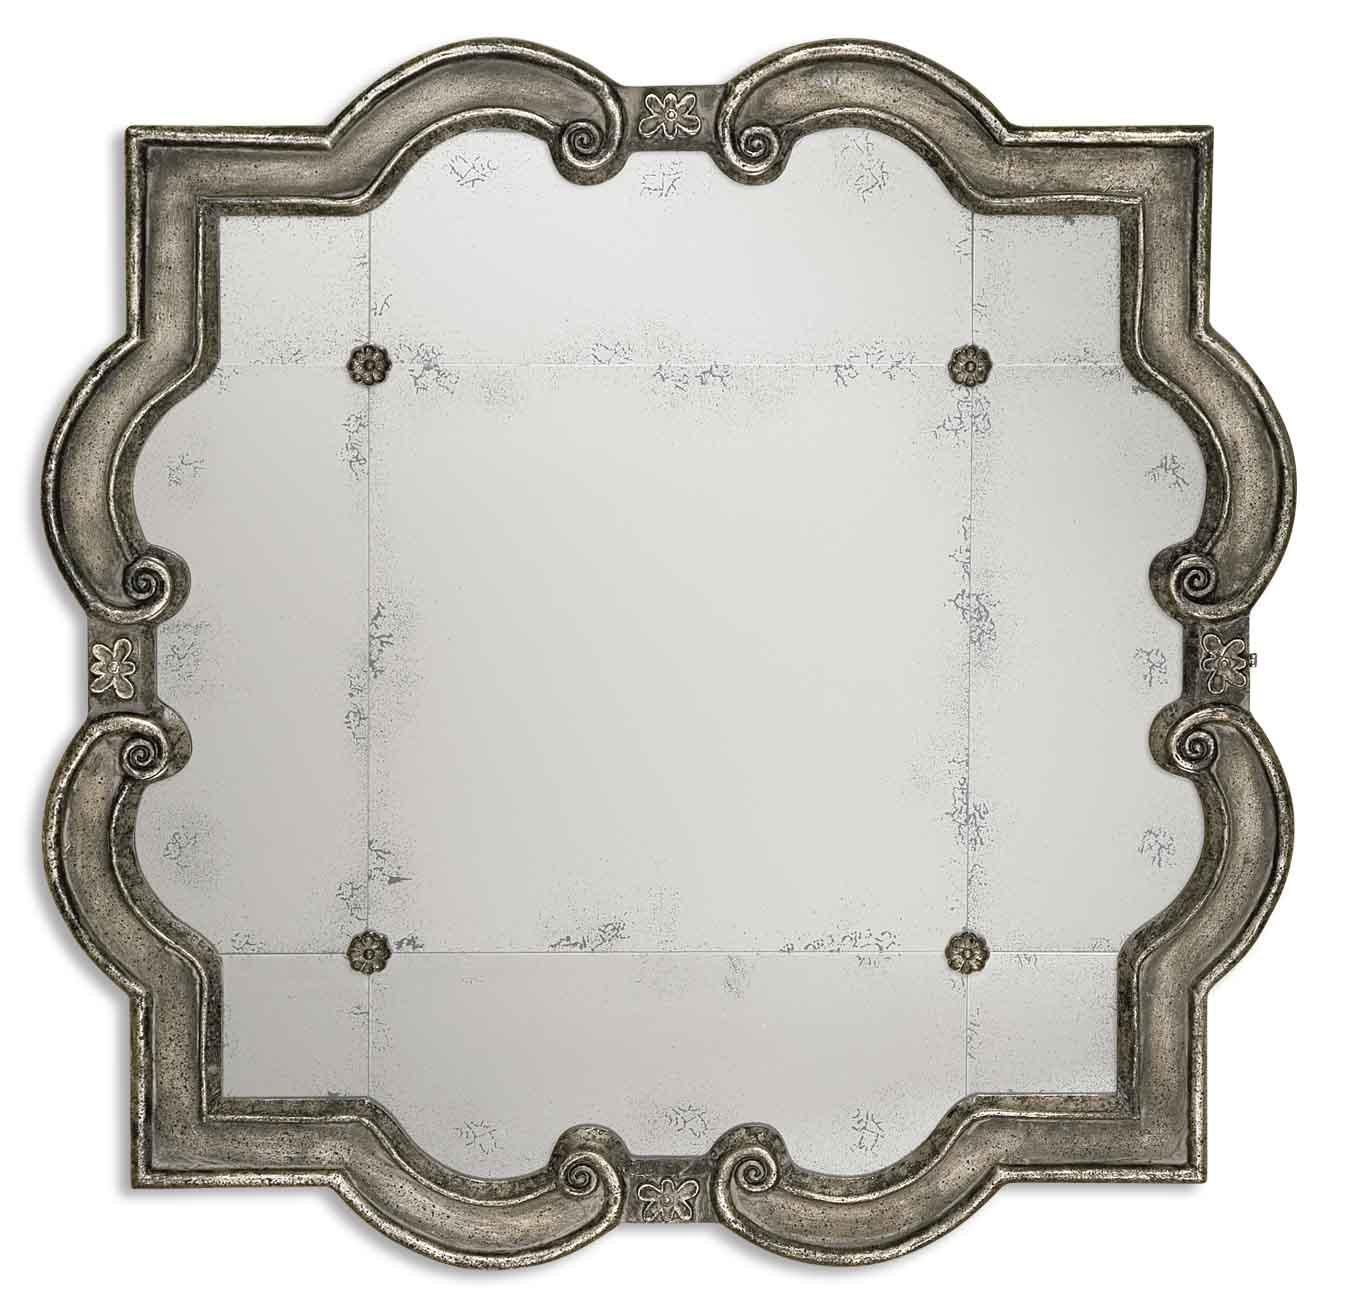 Uttermost Mirrors Prisca - Item Number: 12557 P